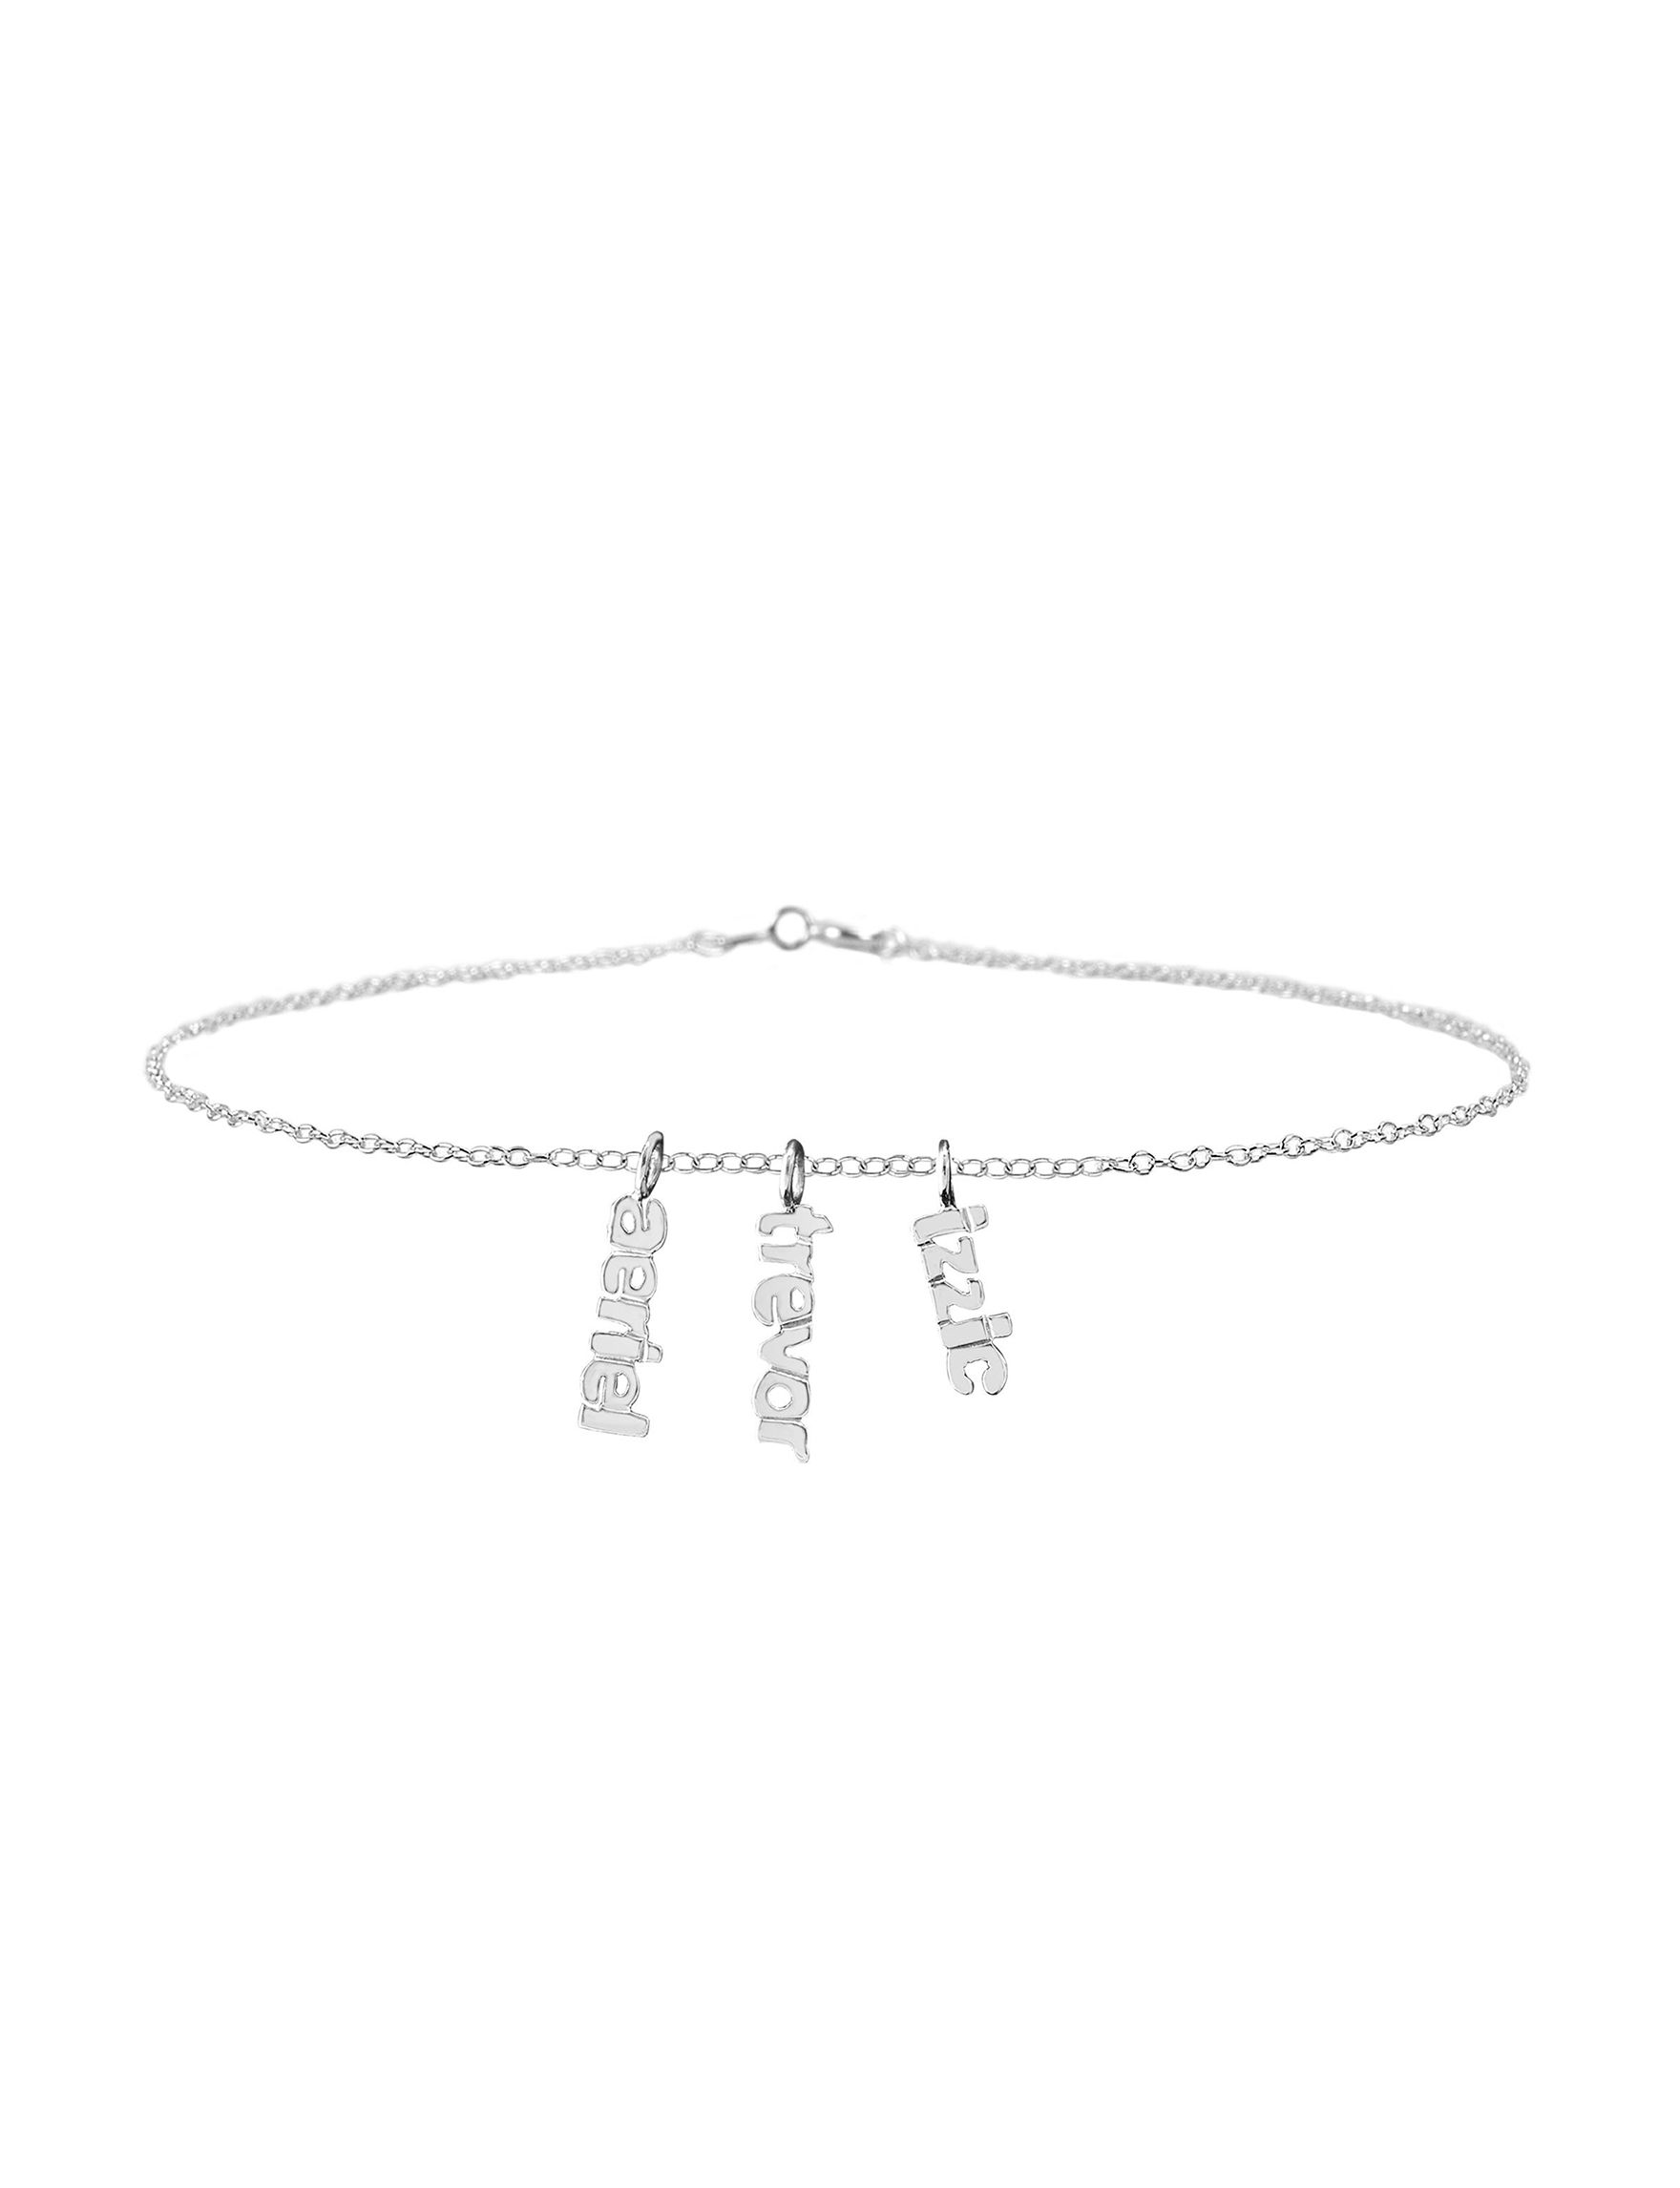 Jay Aimee  Anklets Fine Jewelry